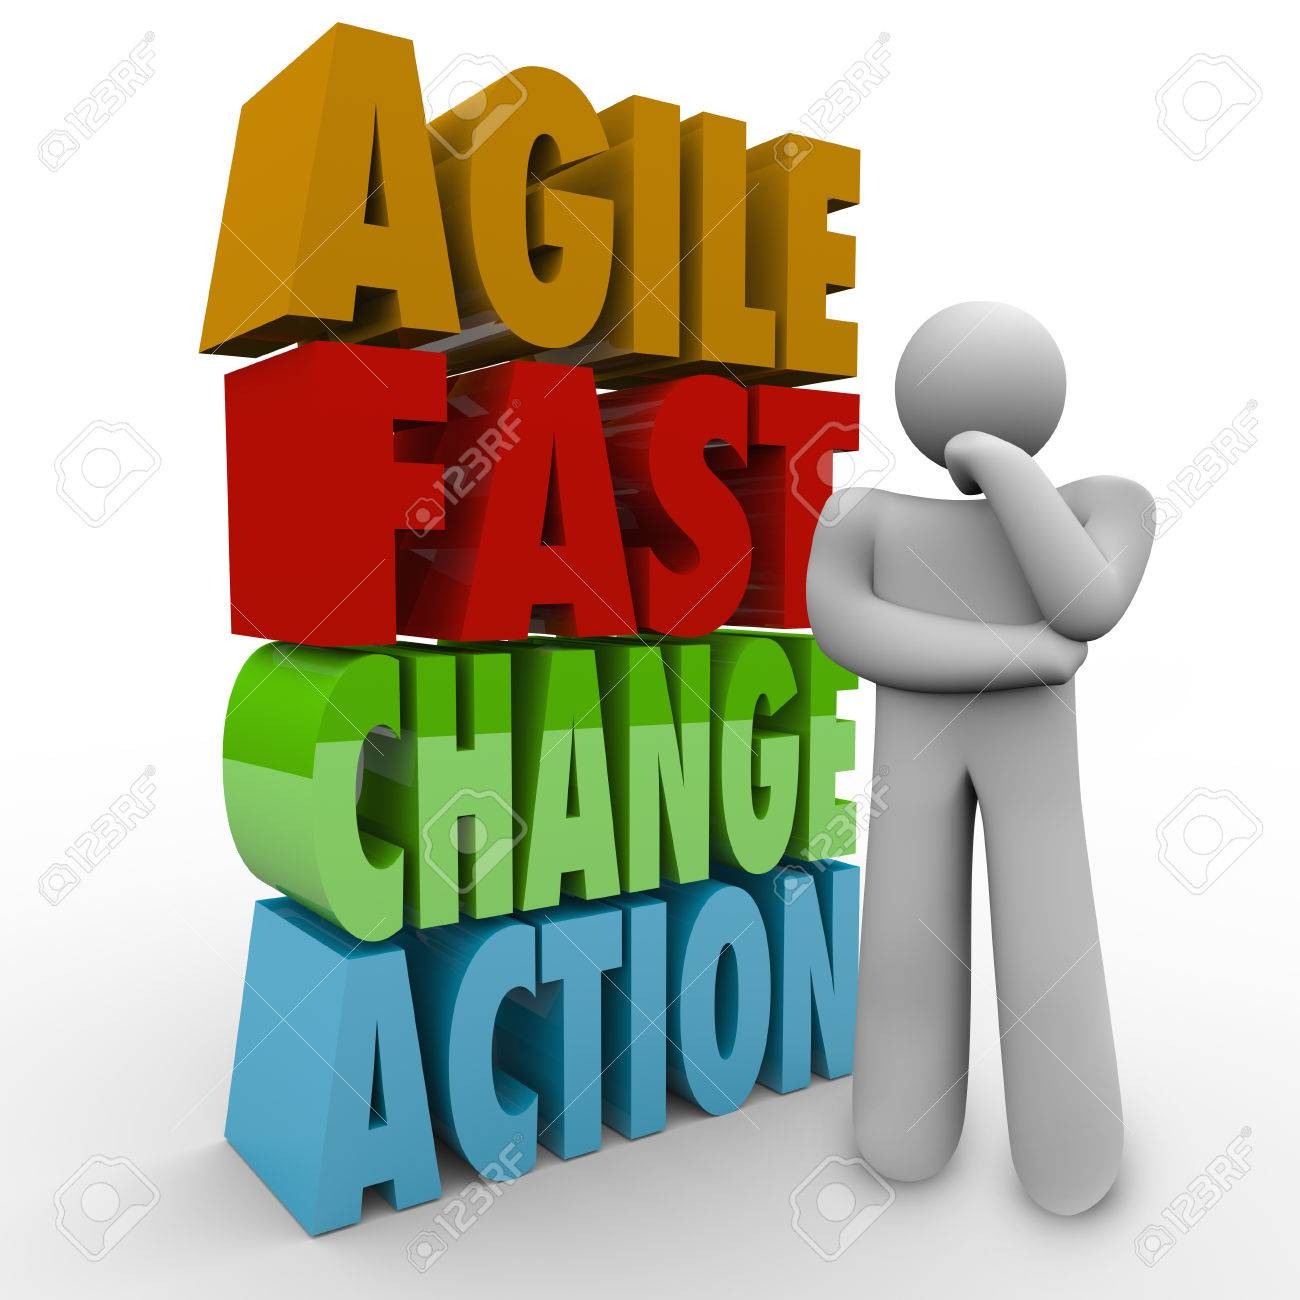 agile fast change action words and a thinking person wondering agile fast change action words and a thinking person wondering how to adapt to overcome a